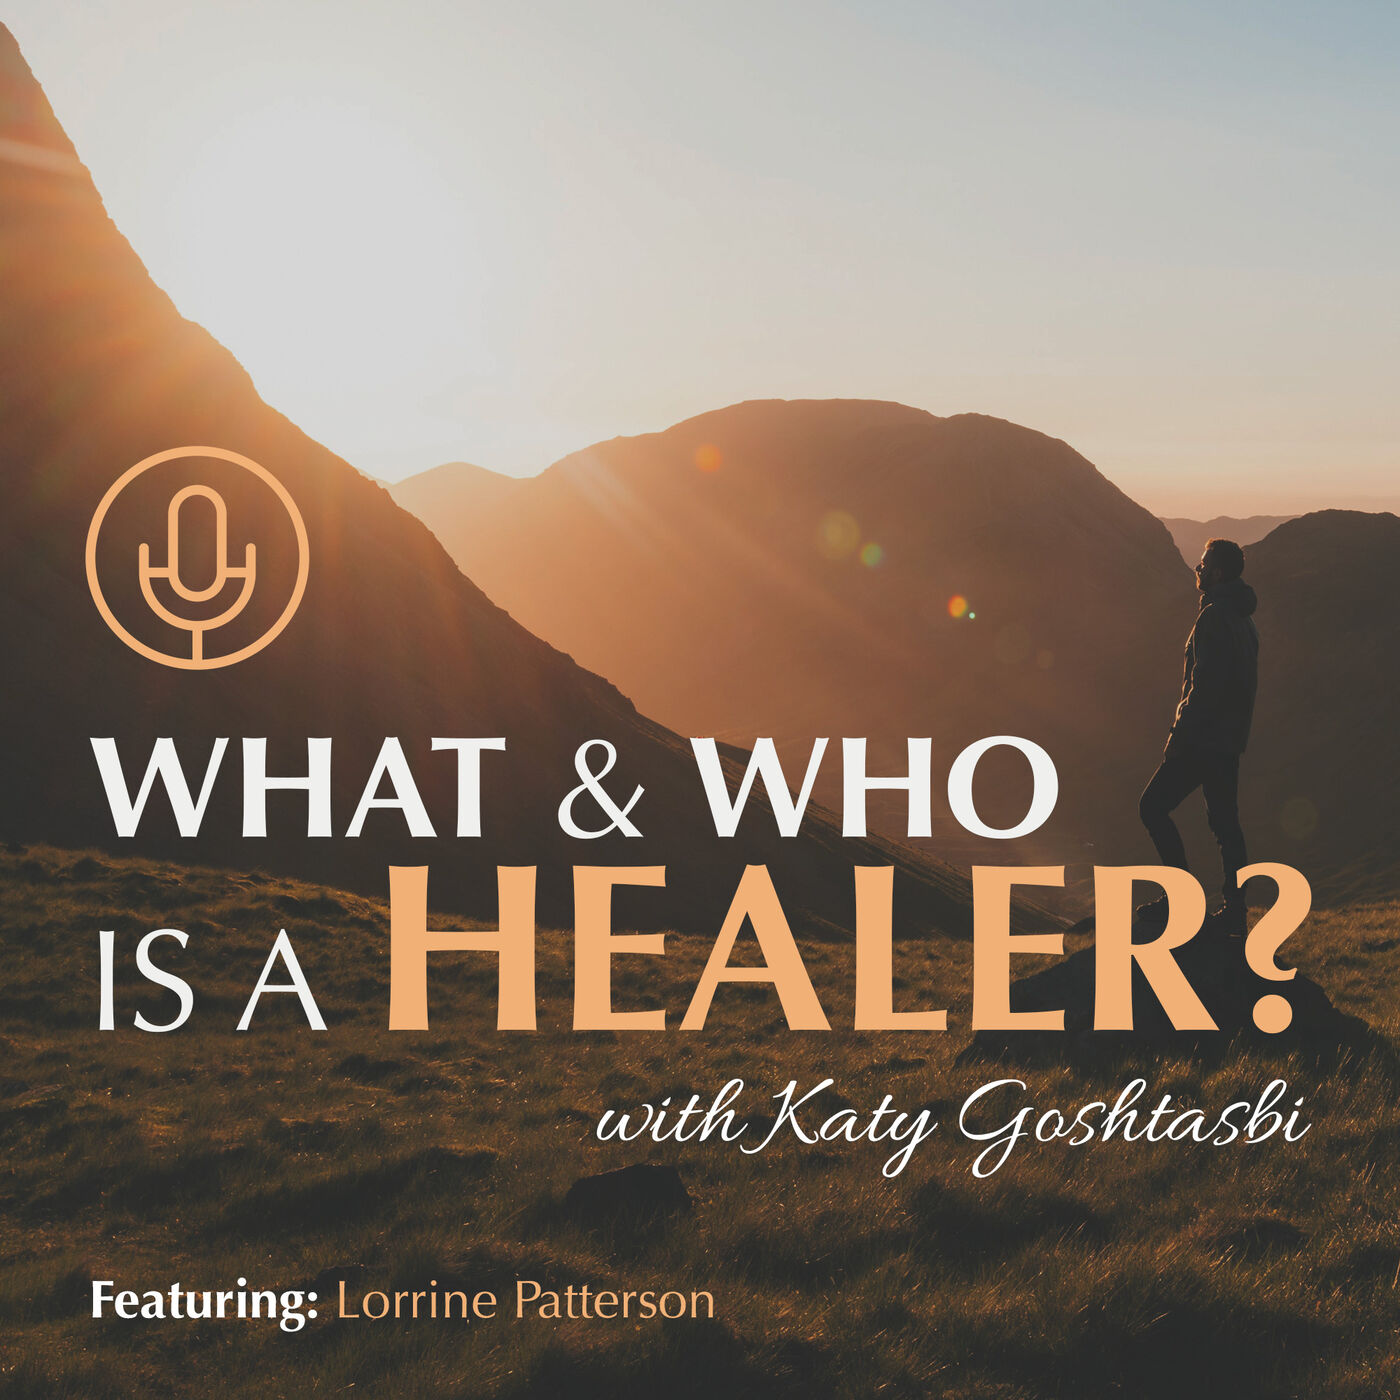 What & Who Is a Healer? Interview with Lorrine Patterson